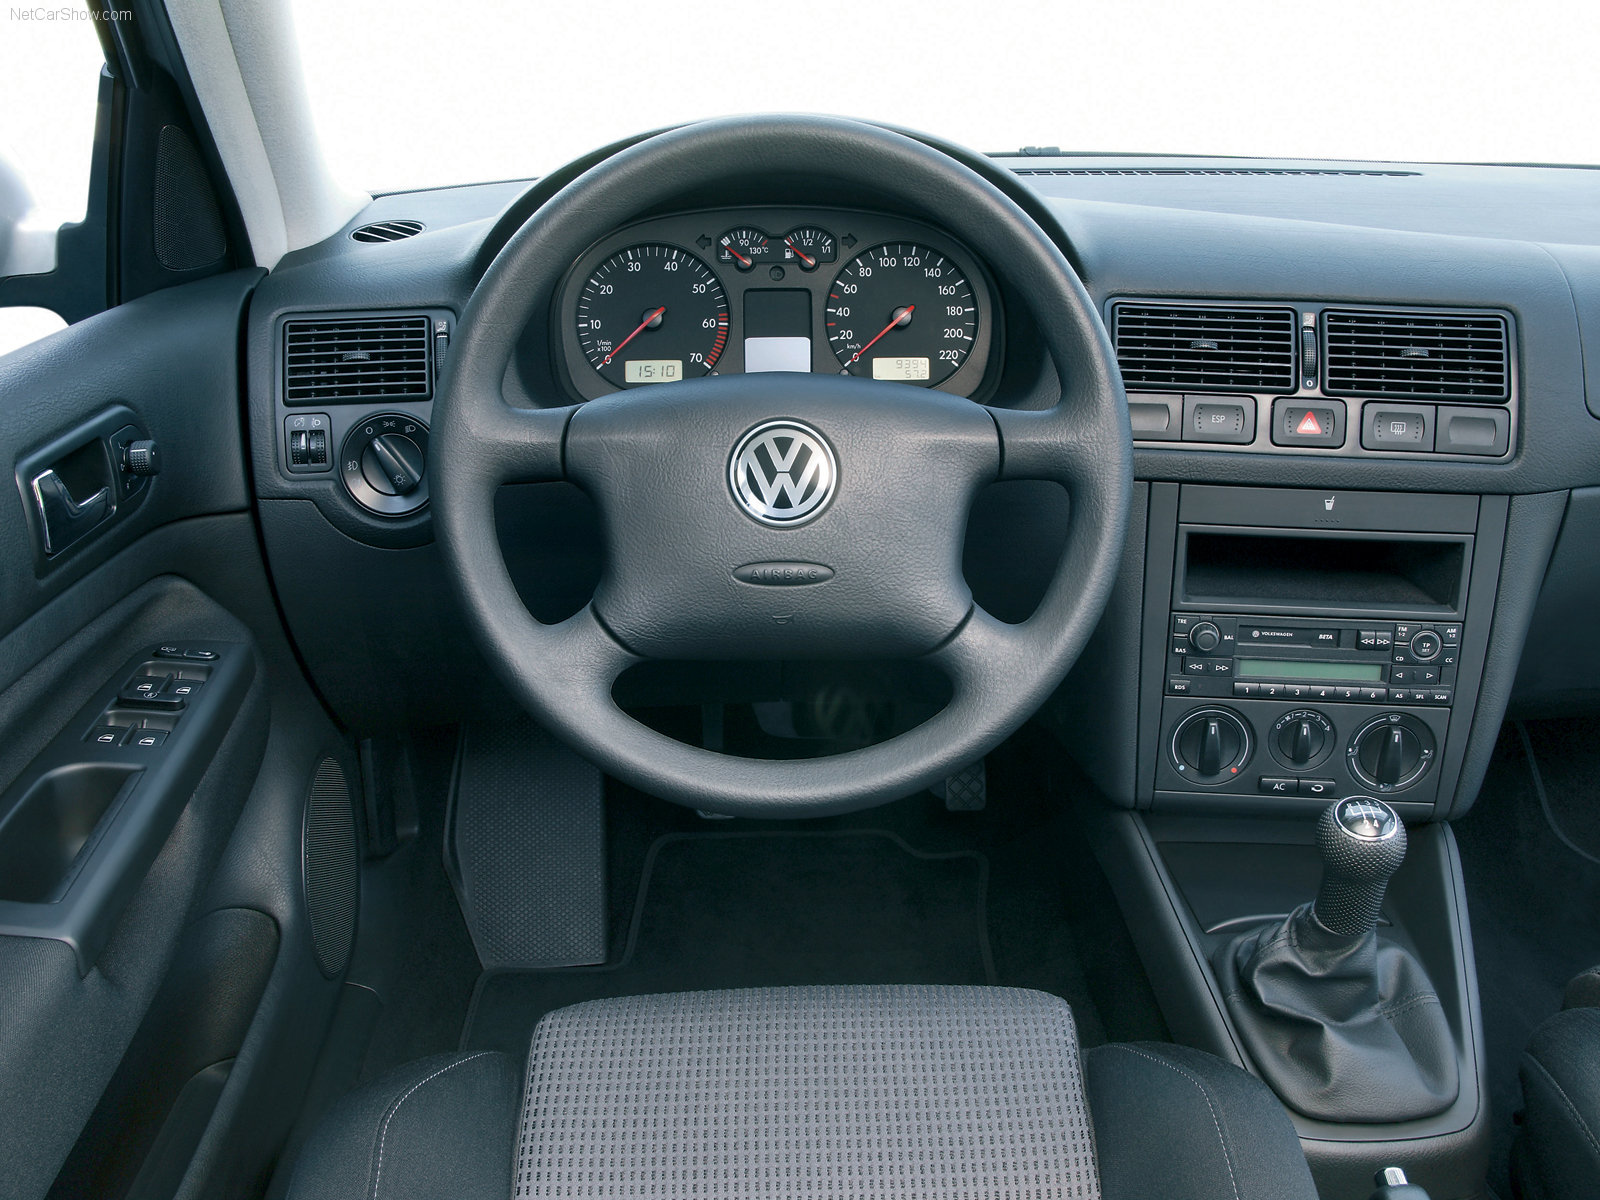 Vw Golf 4 Image 3